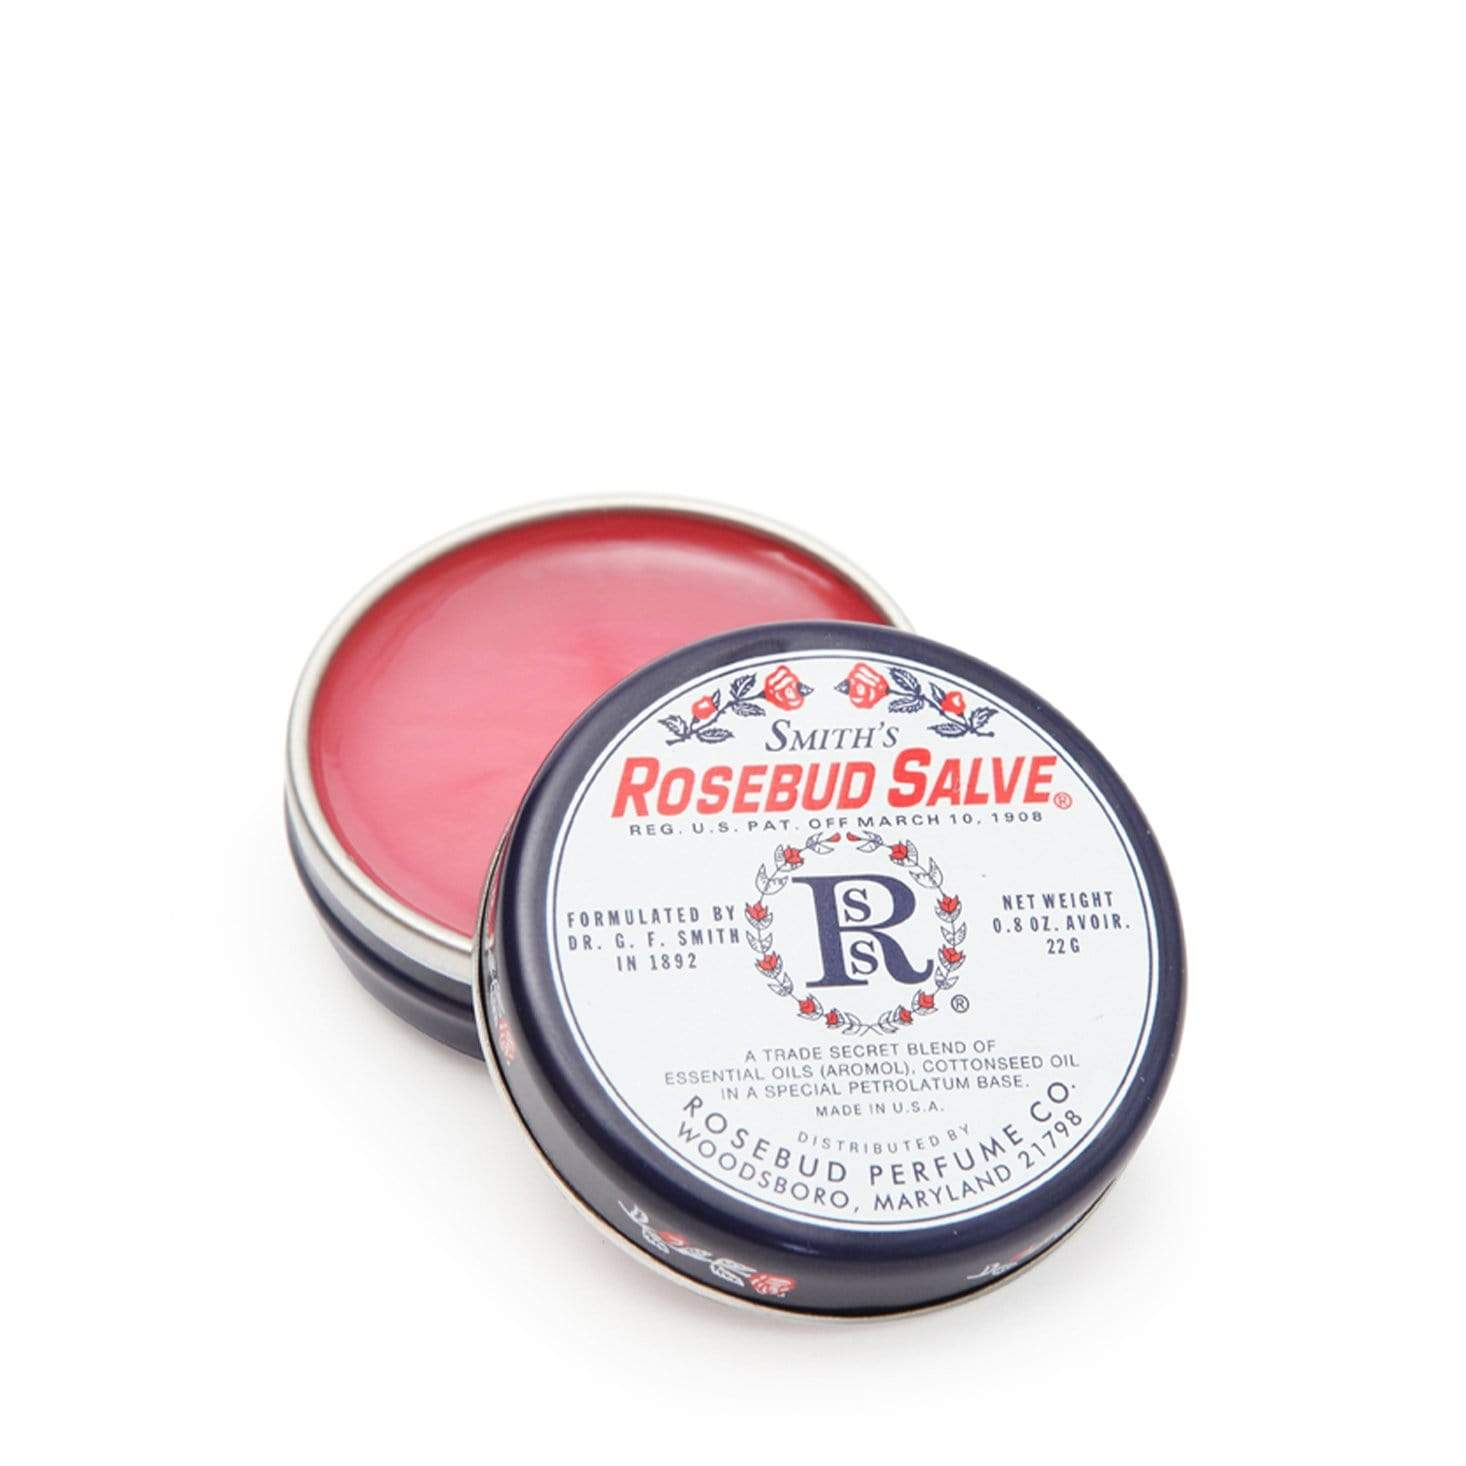 Smith's Rosebud Salve - Tin